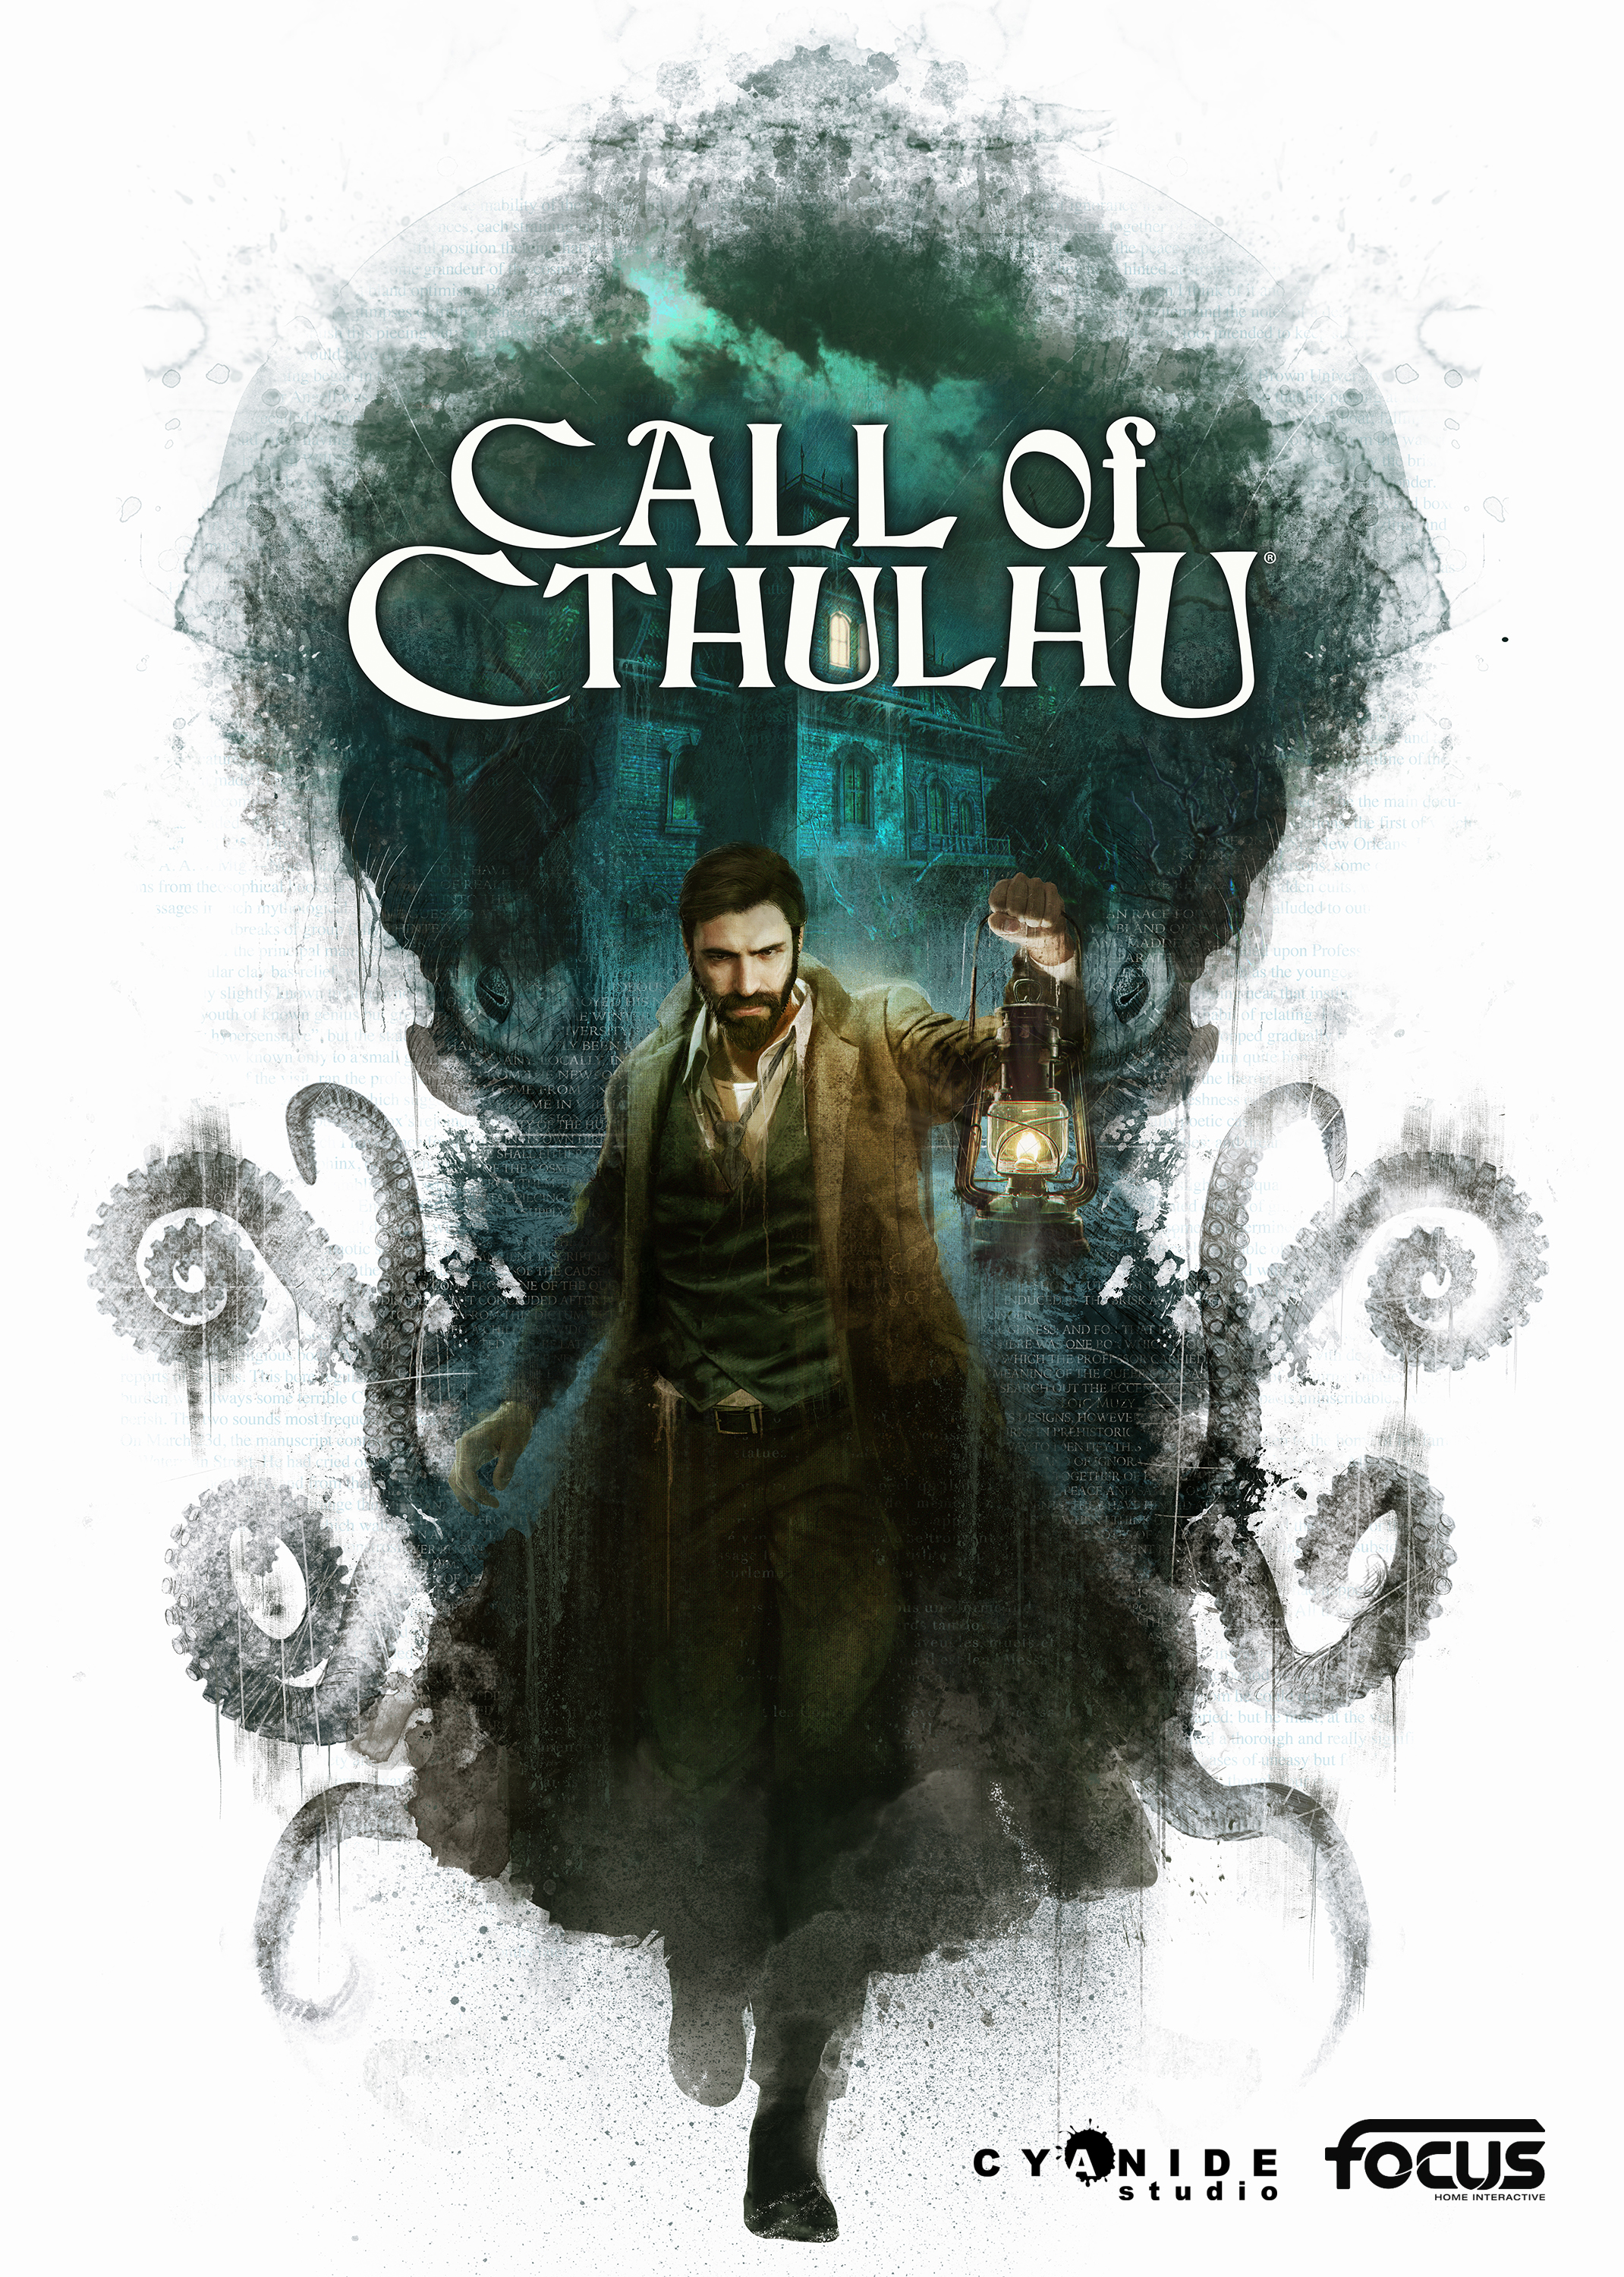 Call of Cthulhu: The Official Video Game (Video Game 2018